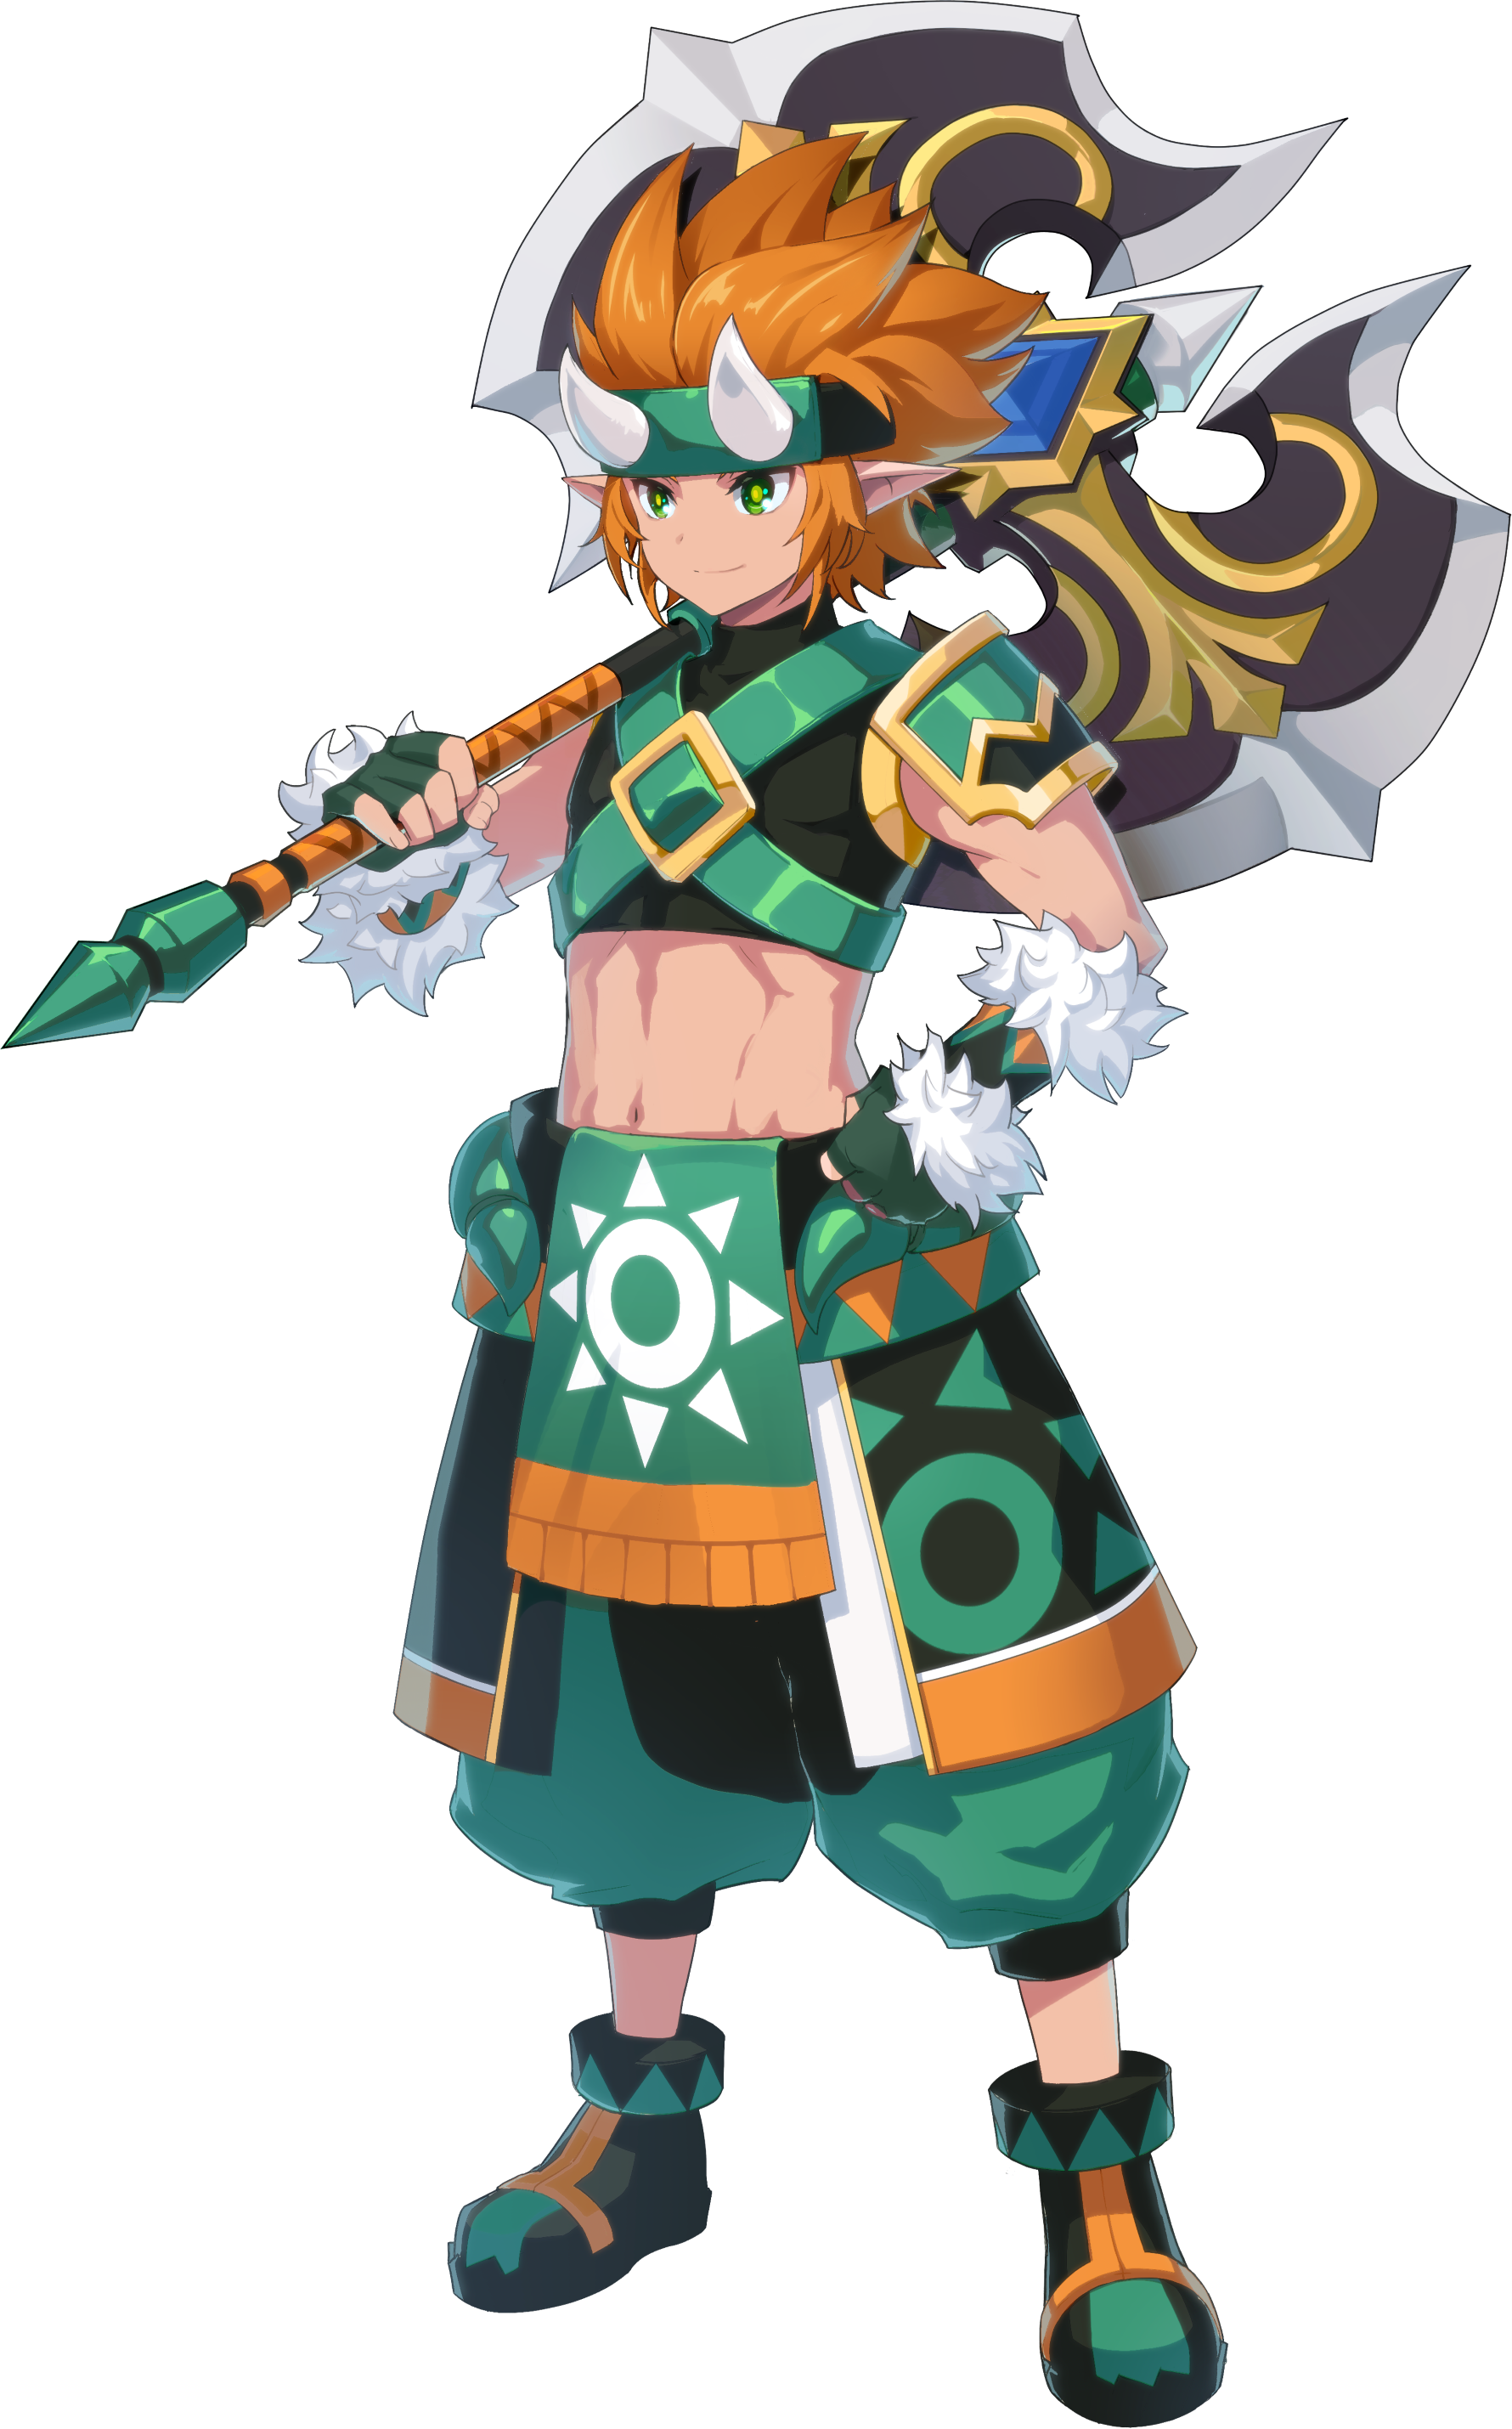 Ryan/Grand Chase Dimensional Chaser